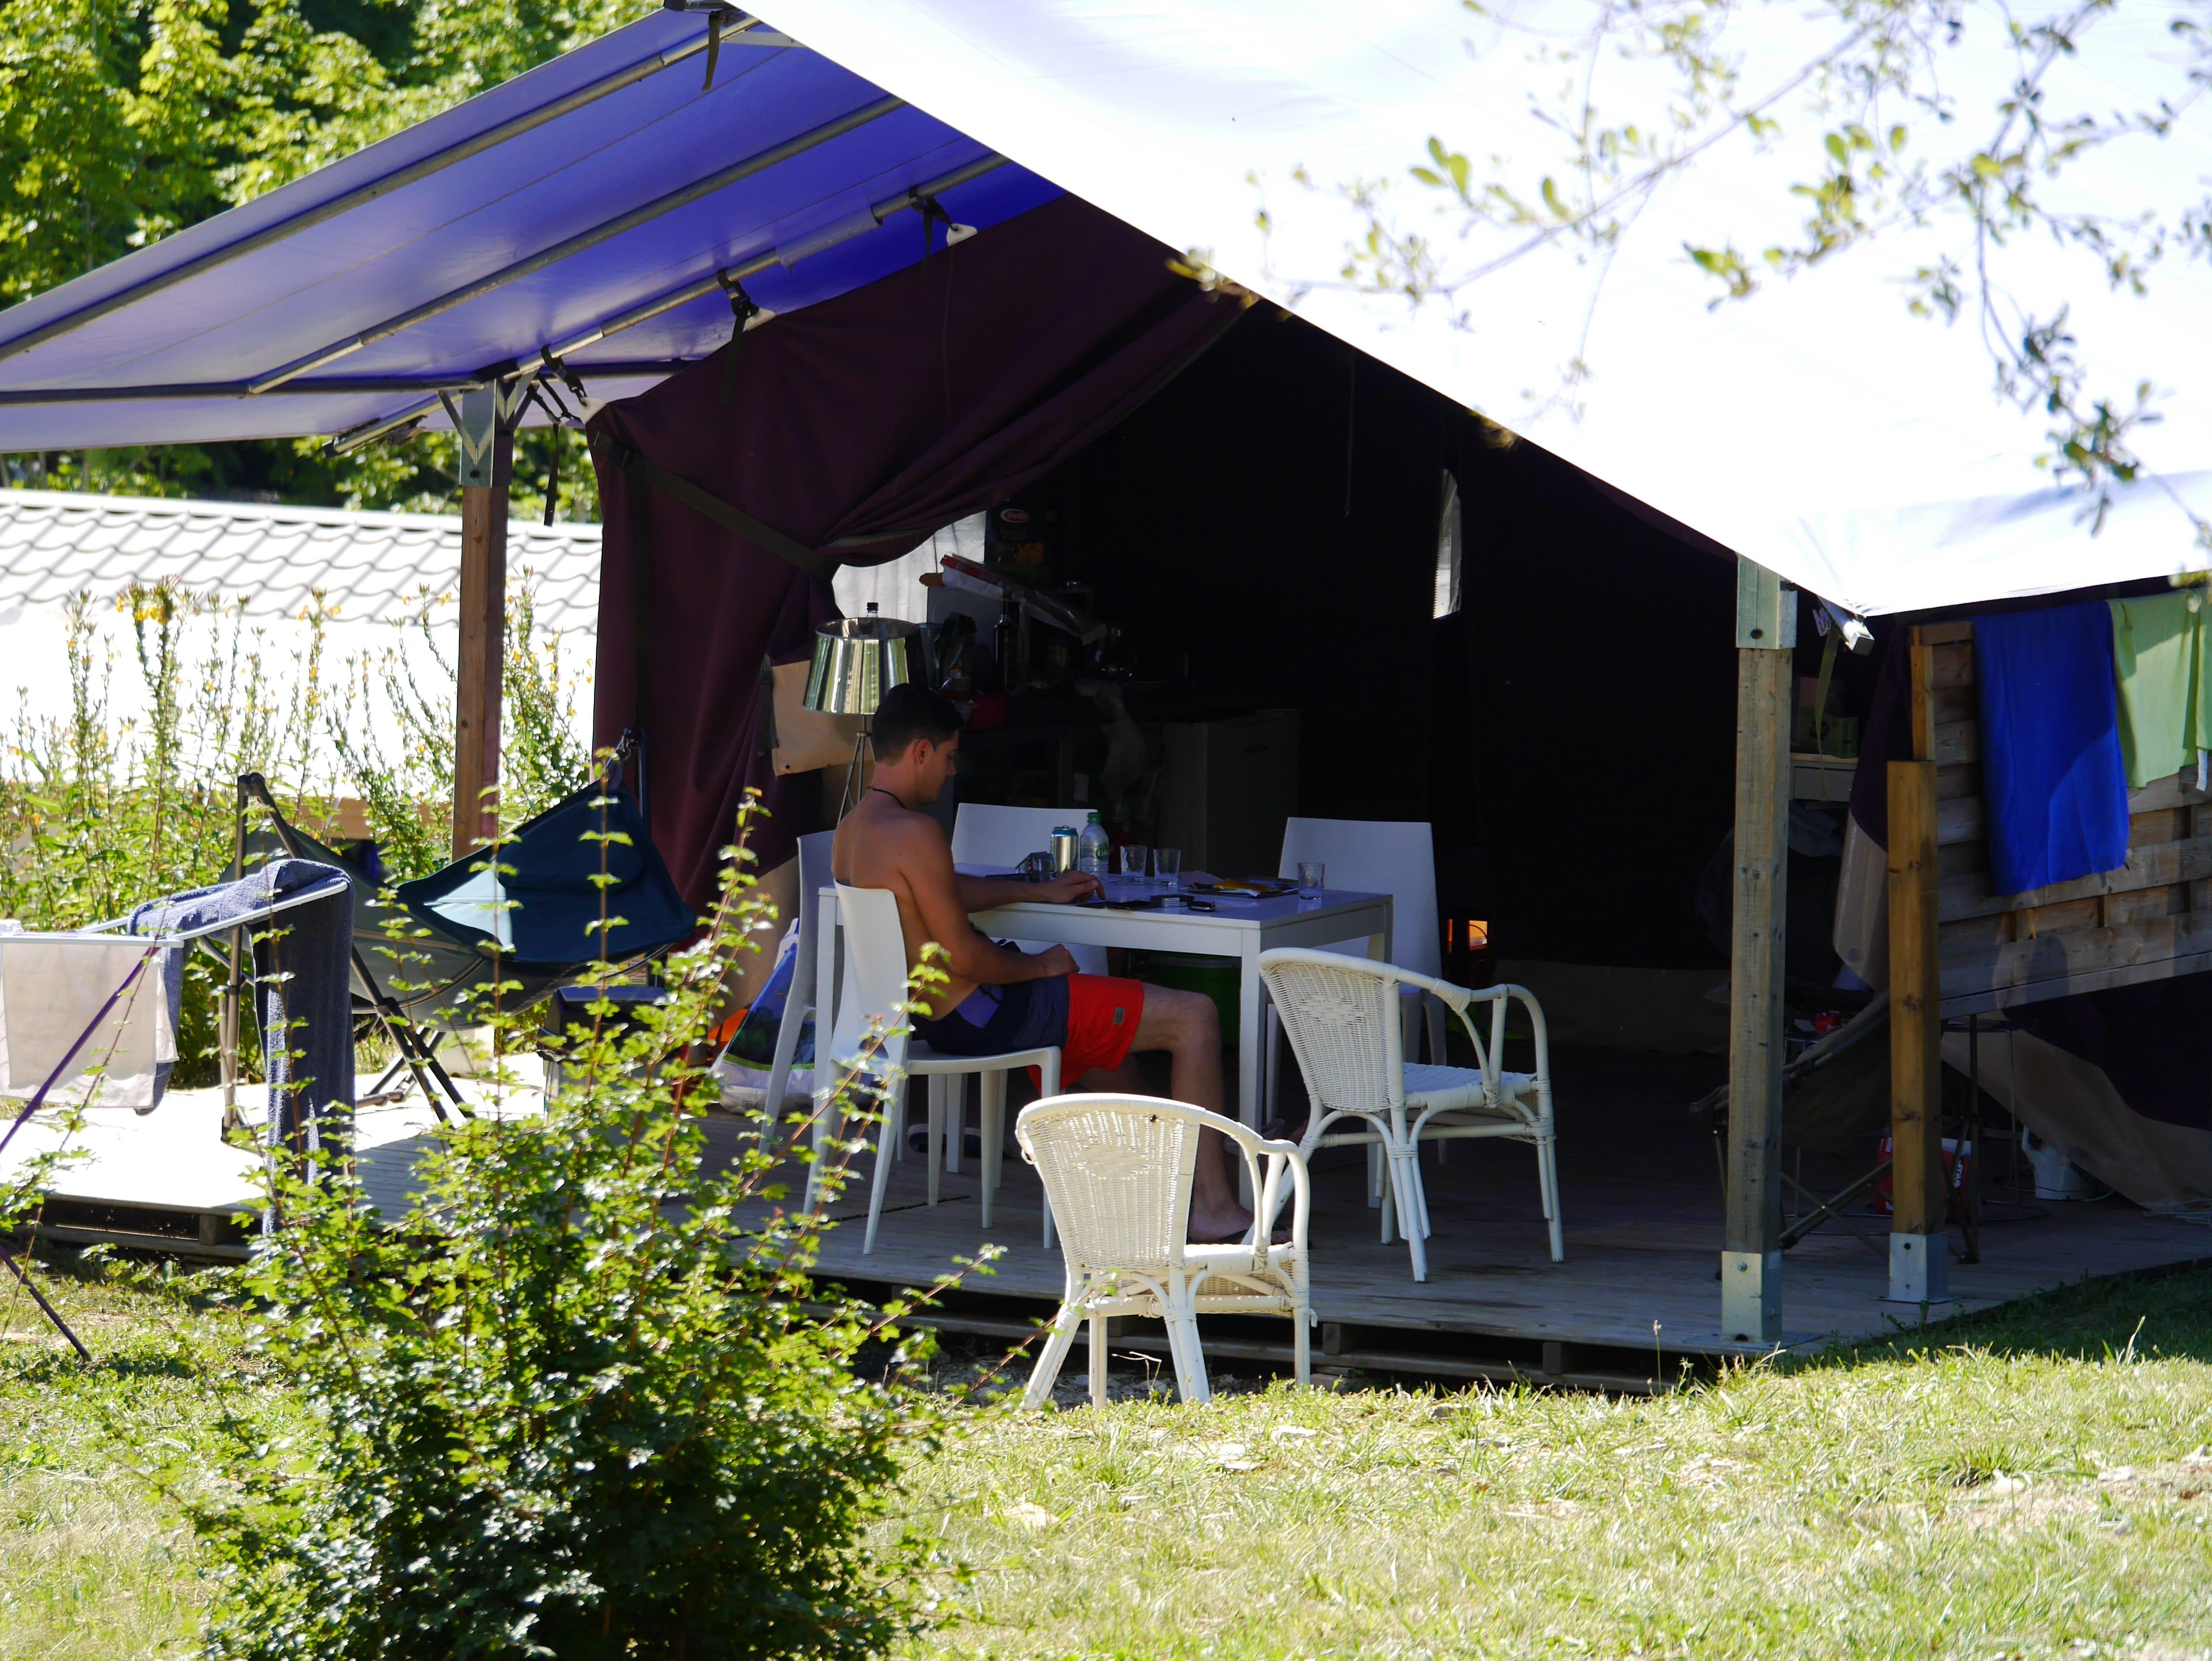 Accommodation - Canvas Bungalow Freeflower 37M²  (2 Bedrooms) Without Toilet Blocks - Flower Camping Le Lac aux Oiseaux